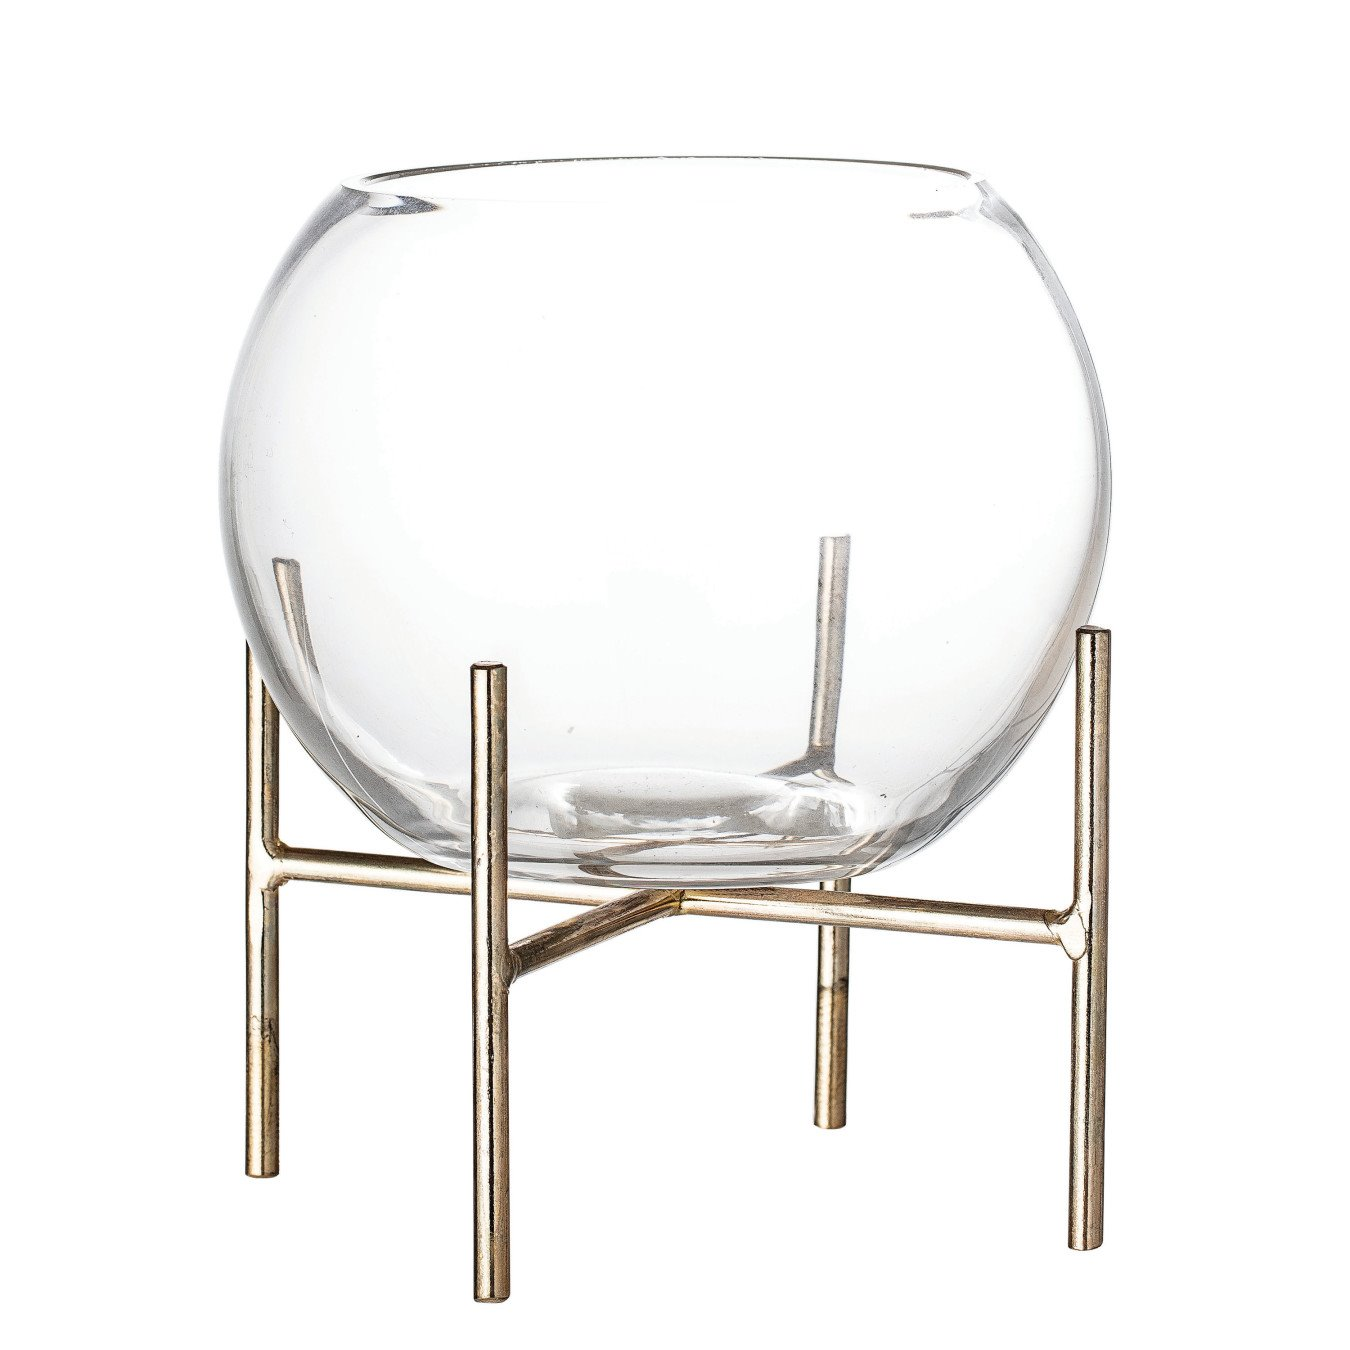 Clear Glass Ball Shaped Vase on Gold Metal Holder (Set of 2 Pieces)